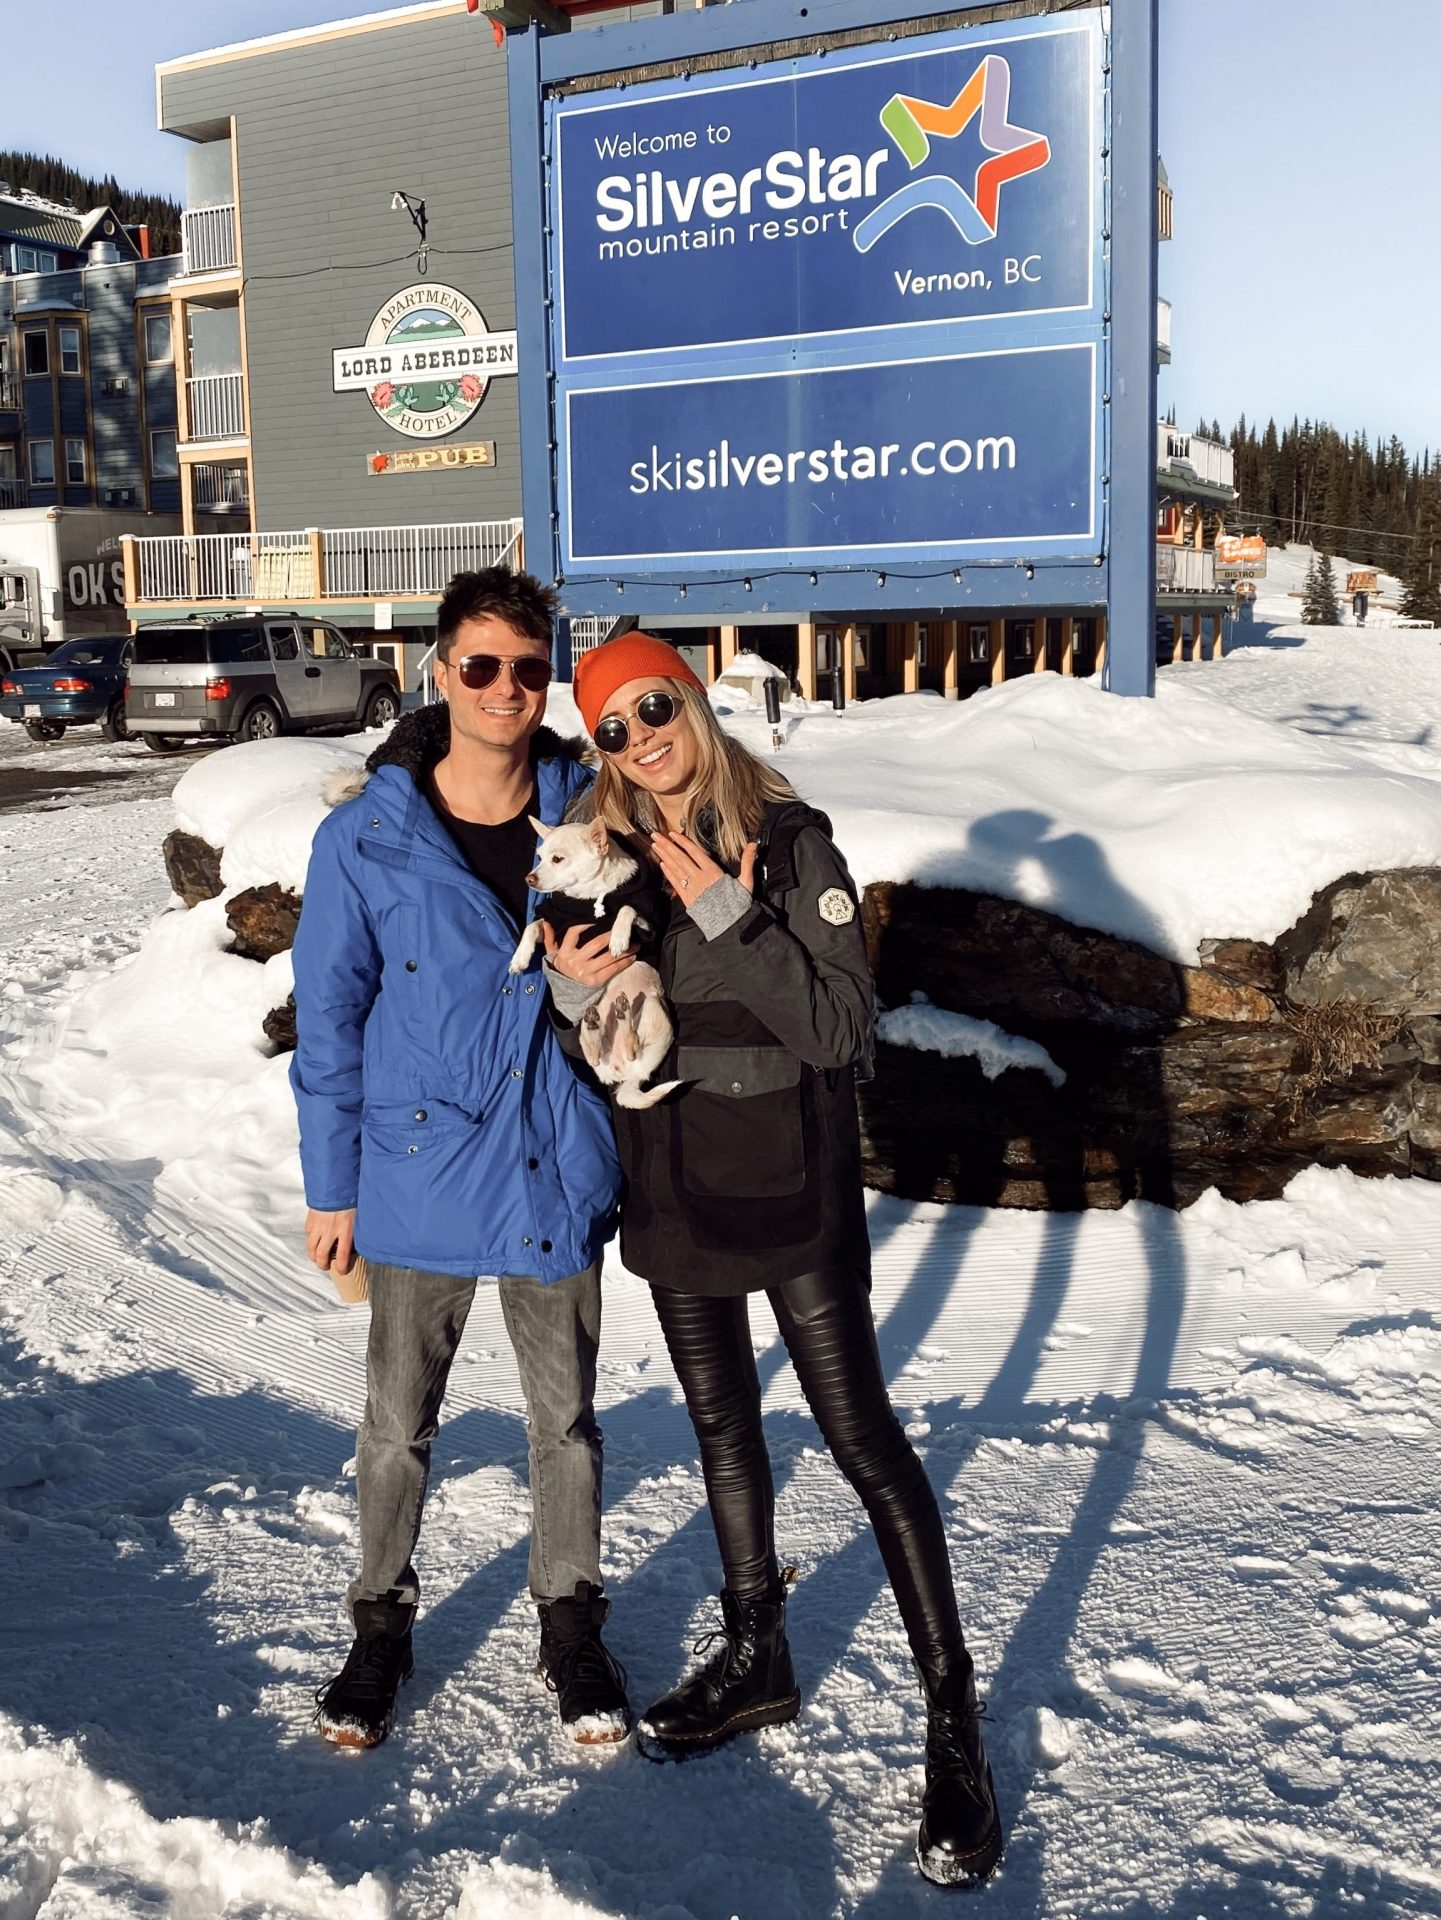 Karissa showing off her new engagement ring with Glen standing beside her. They stand in front of the Silver Star Mountain Resort sign